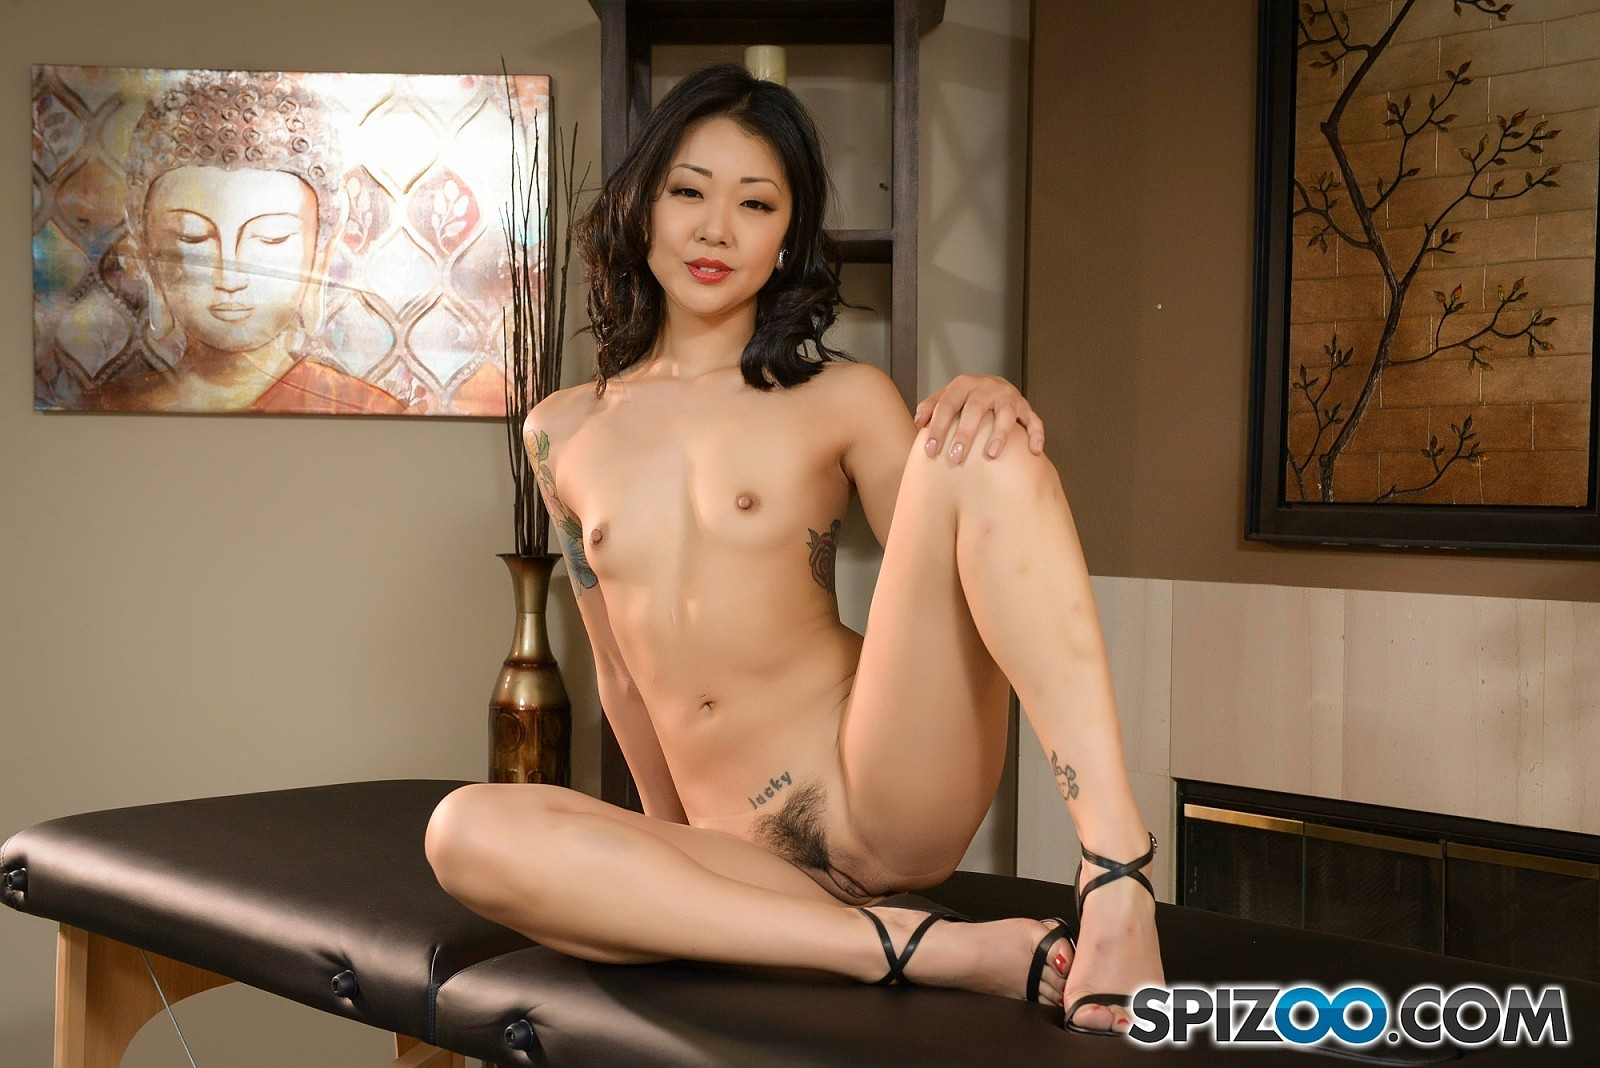 Jeg er Song Massage Interview - Spizoo 116512-2677